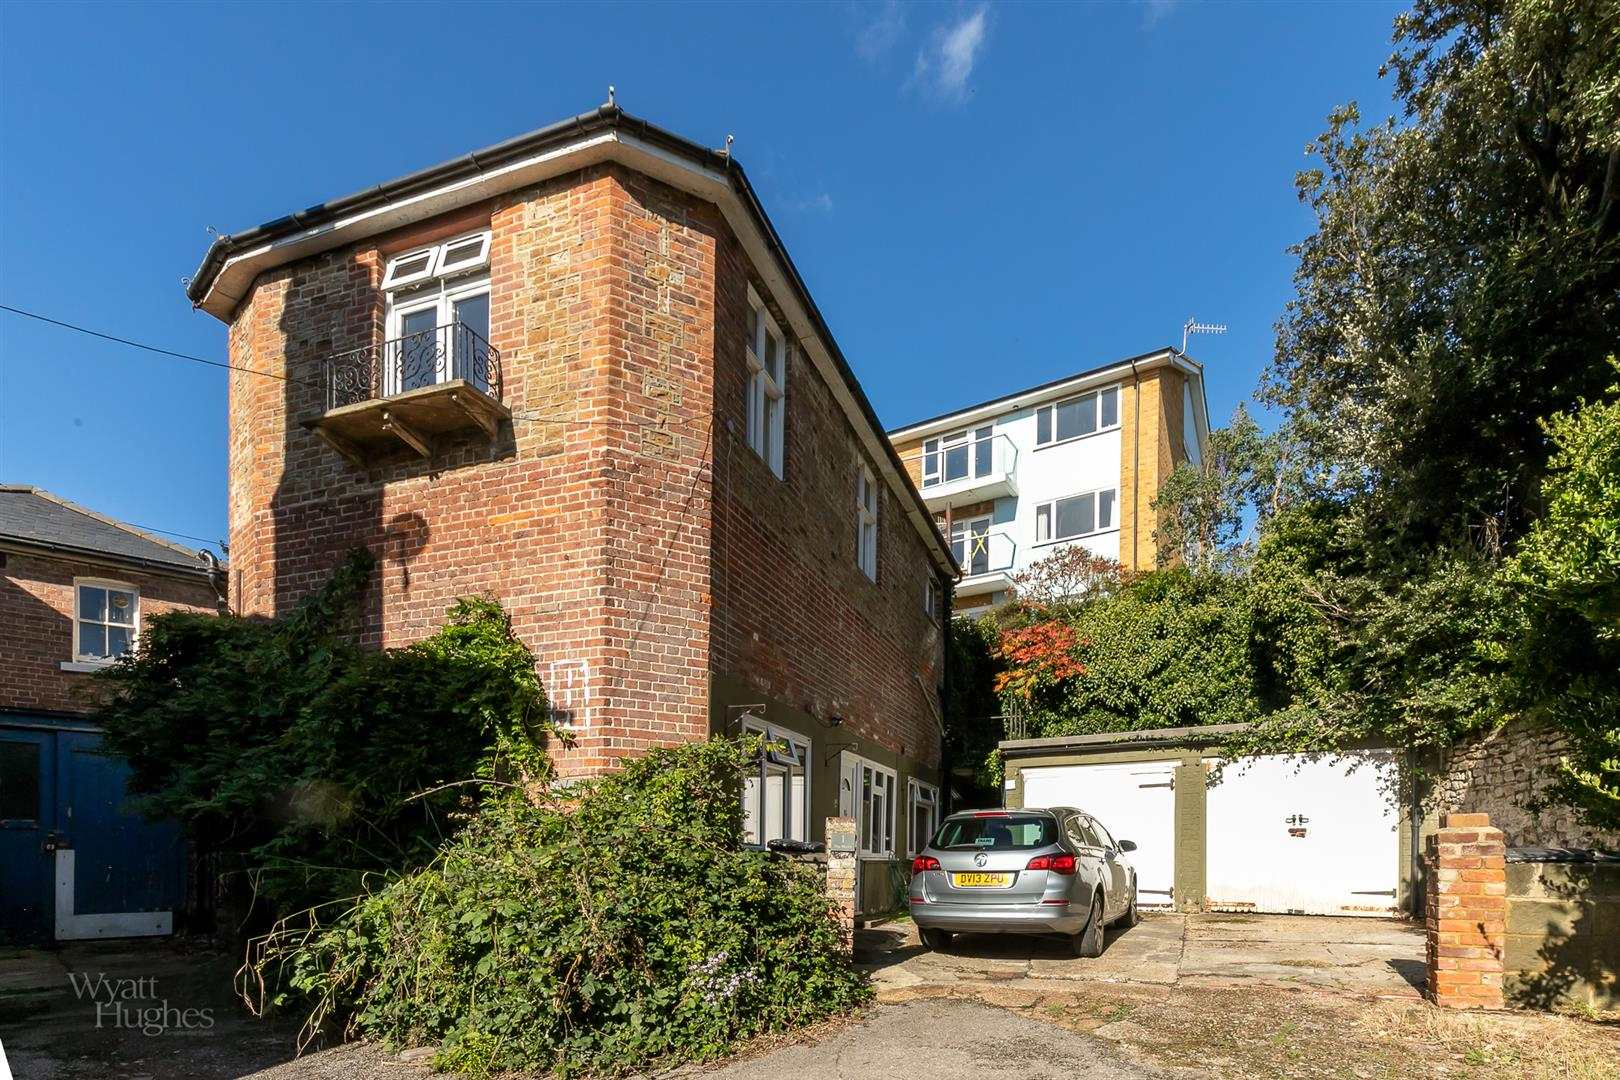 2 bed detached house for sale in West Hill Road, St. Leonards-On-Sea - Property Image 1